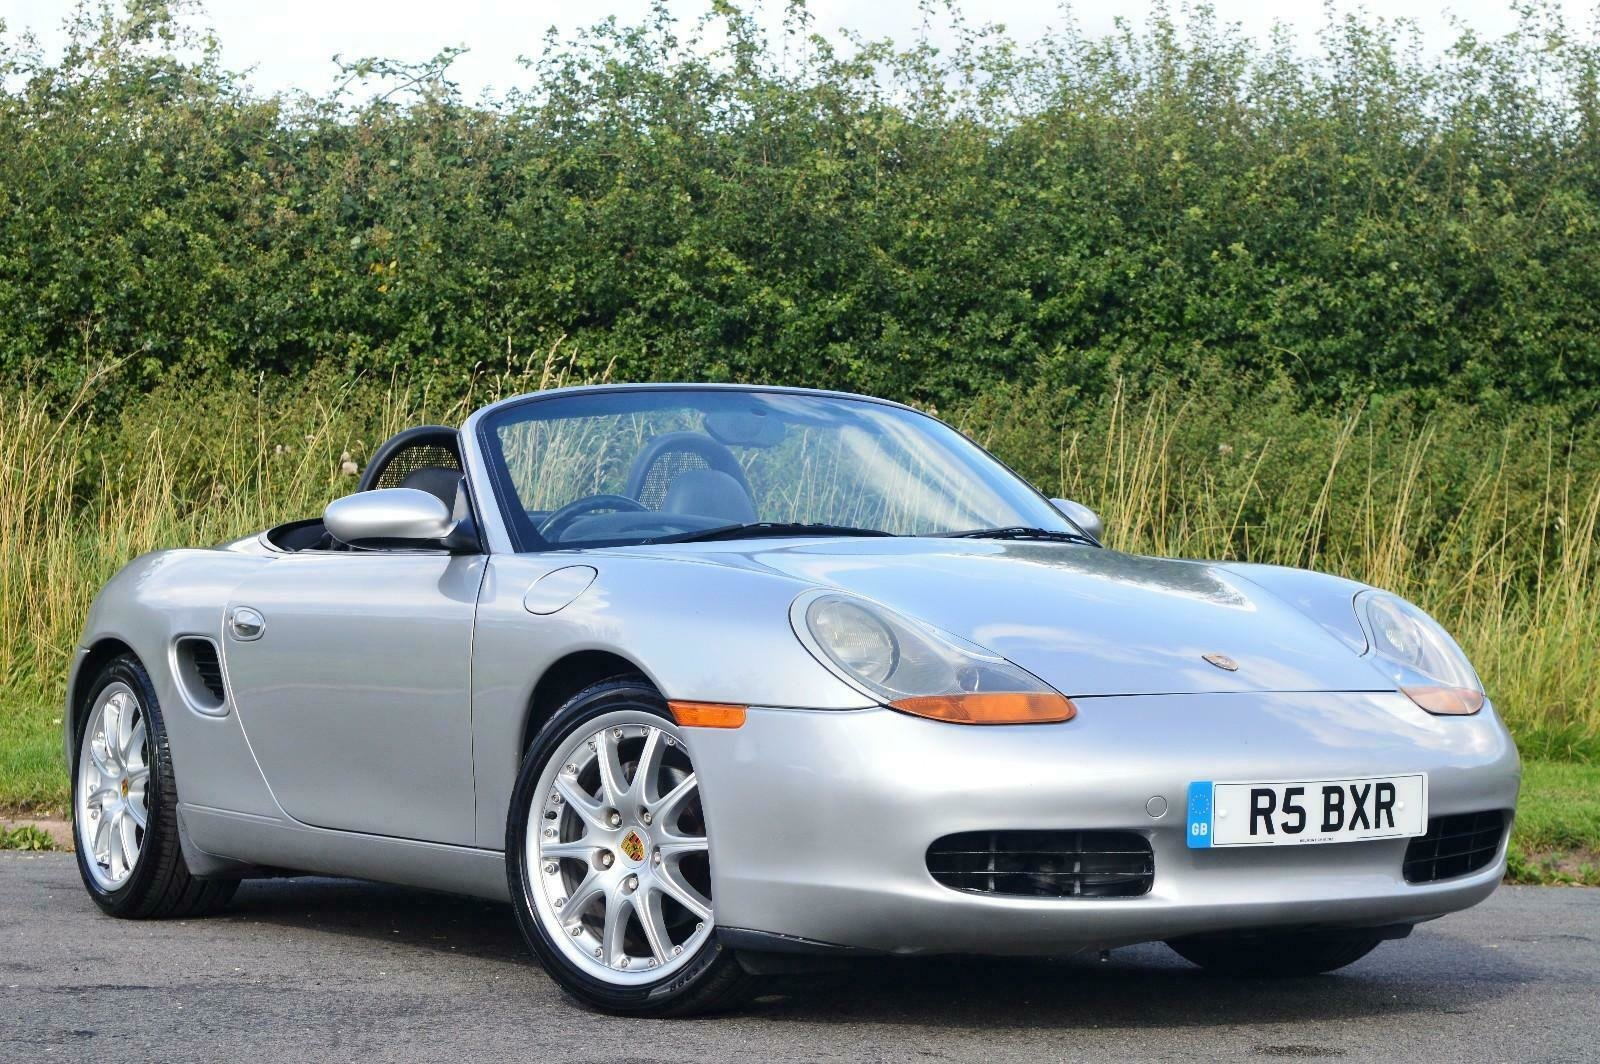 1998 Porsche Boxster 986 2.5 Manual Petrol Convertible F.S.H SOLD (picture 1 of 6)